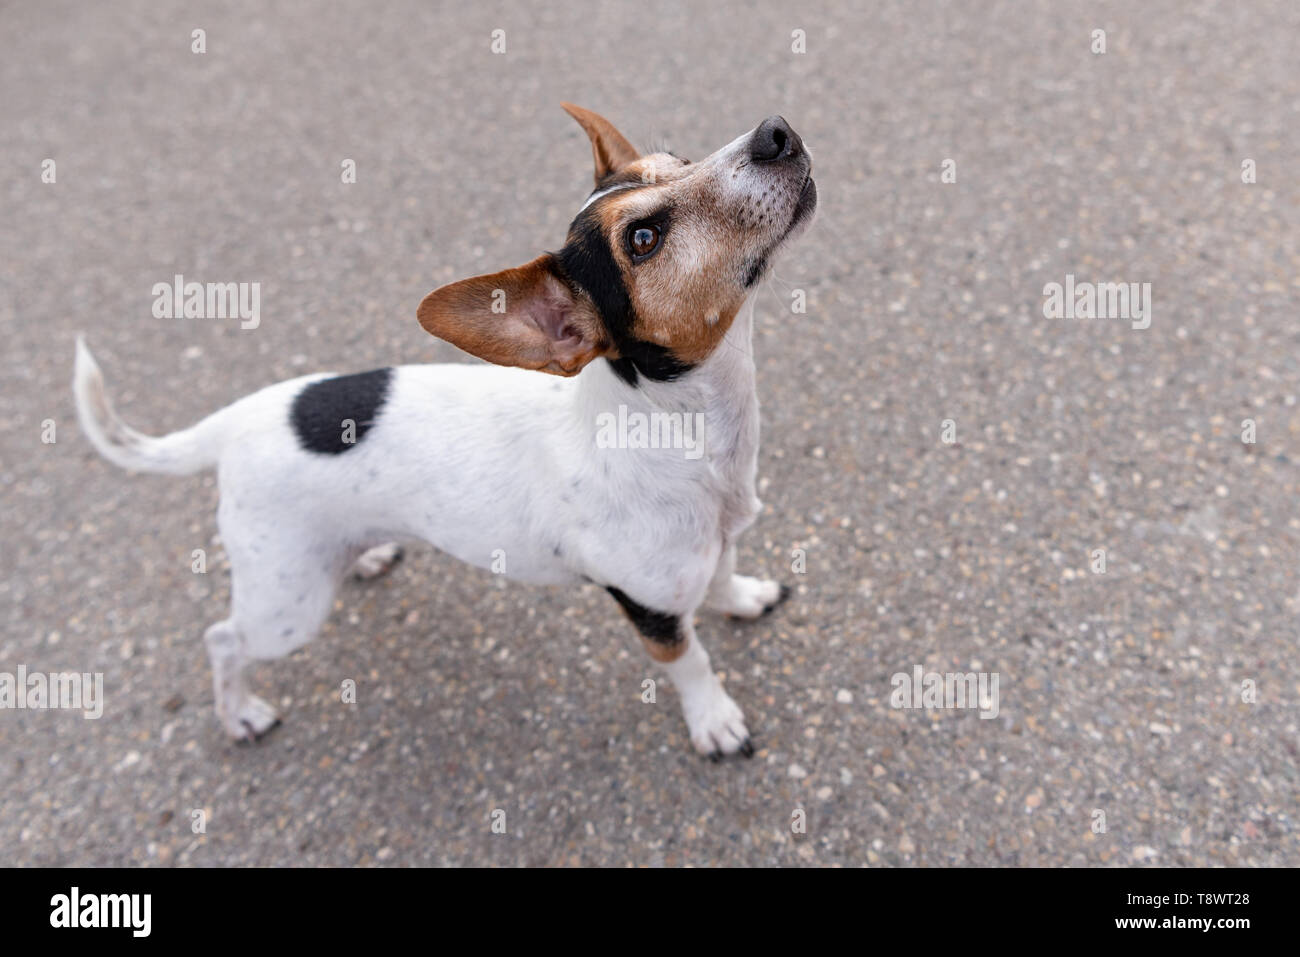 Jack Russell Terrier 11 years old, hair style smooth. Cute little little dog. Doggy is looking up, funny perspective - Stock Image